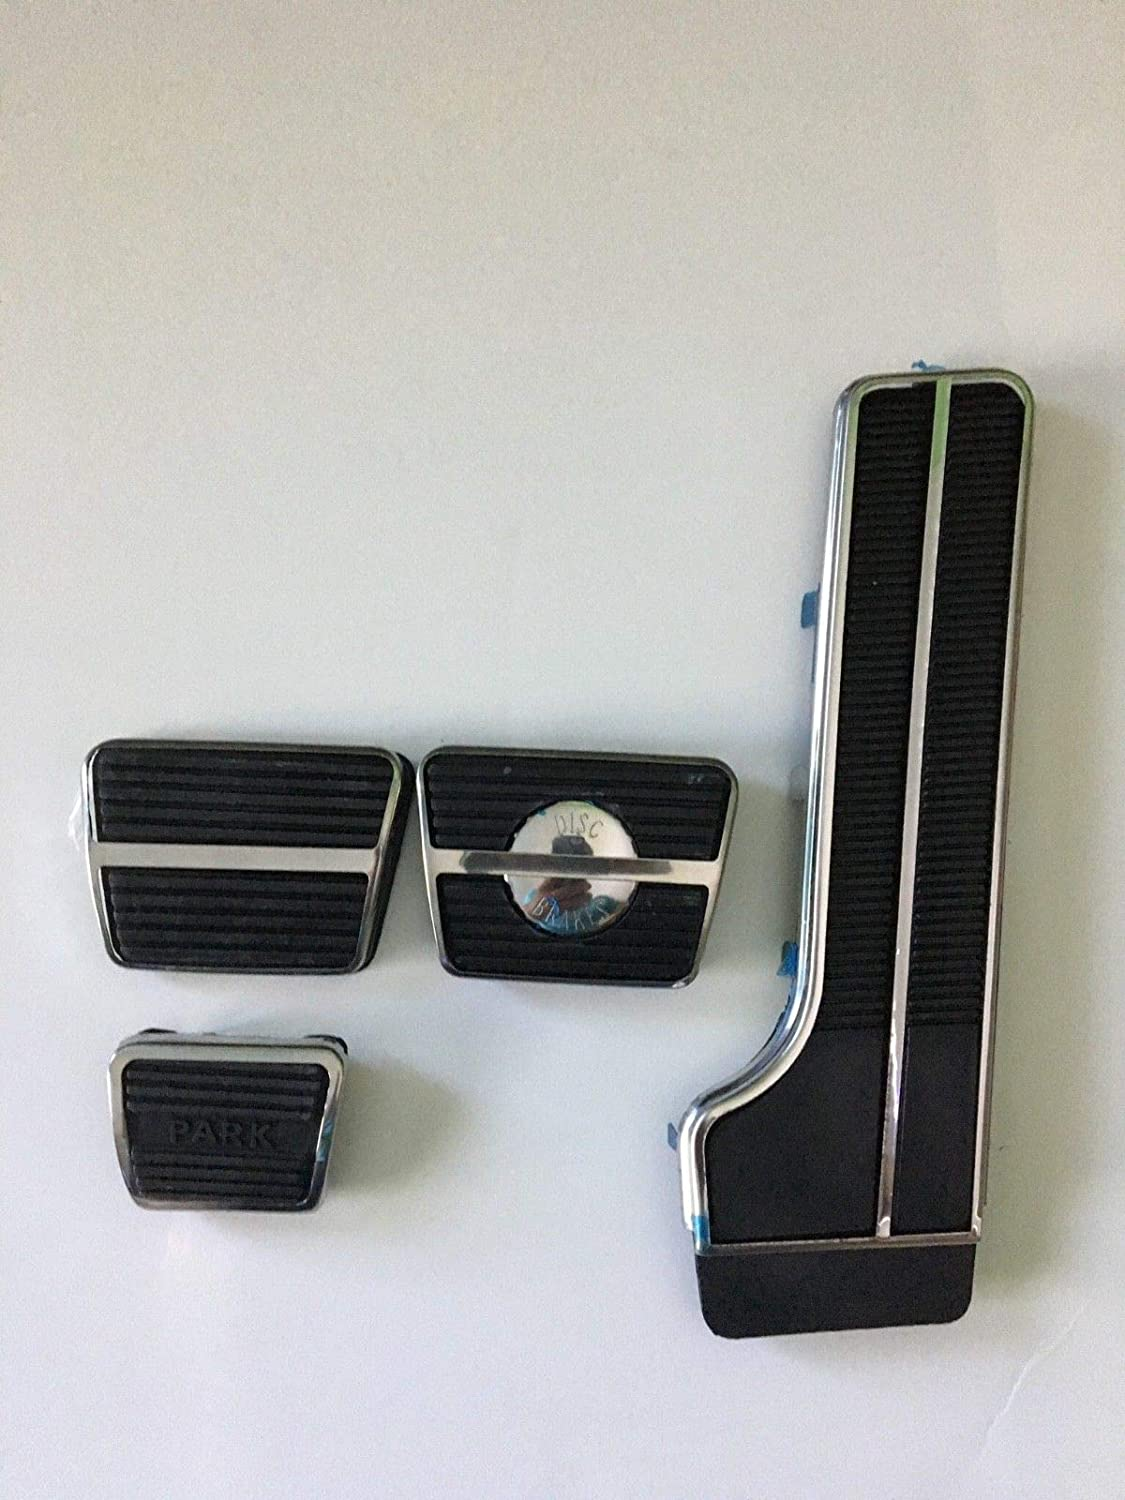 Classic Headquarters 64 65 66 67 Chevelle and El Camino Pedal Pad Kit Manual with DiscStainless Trim